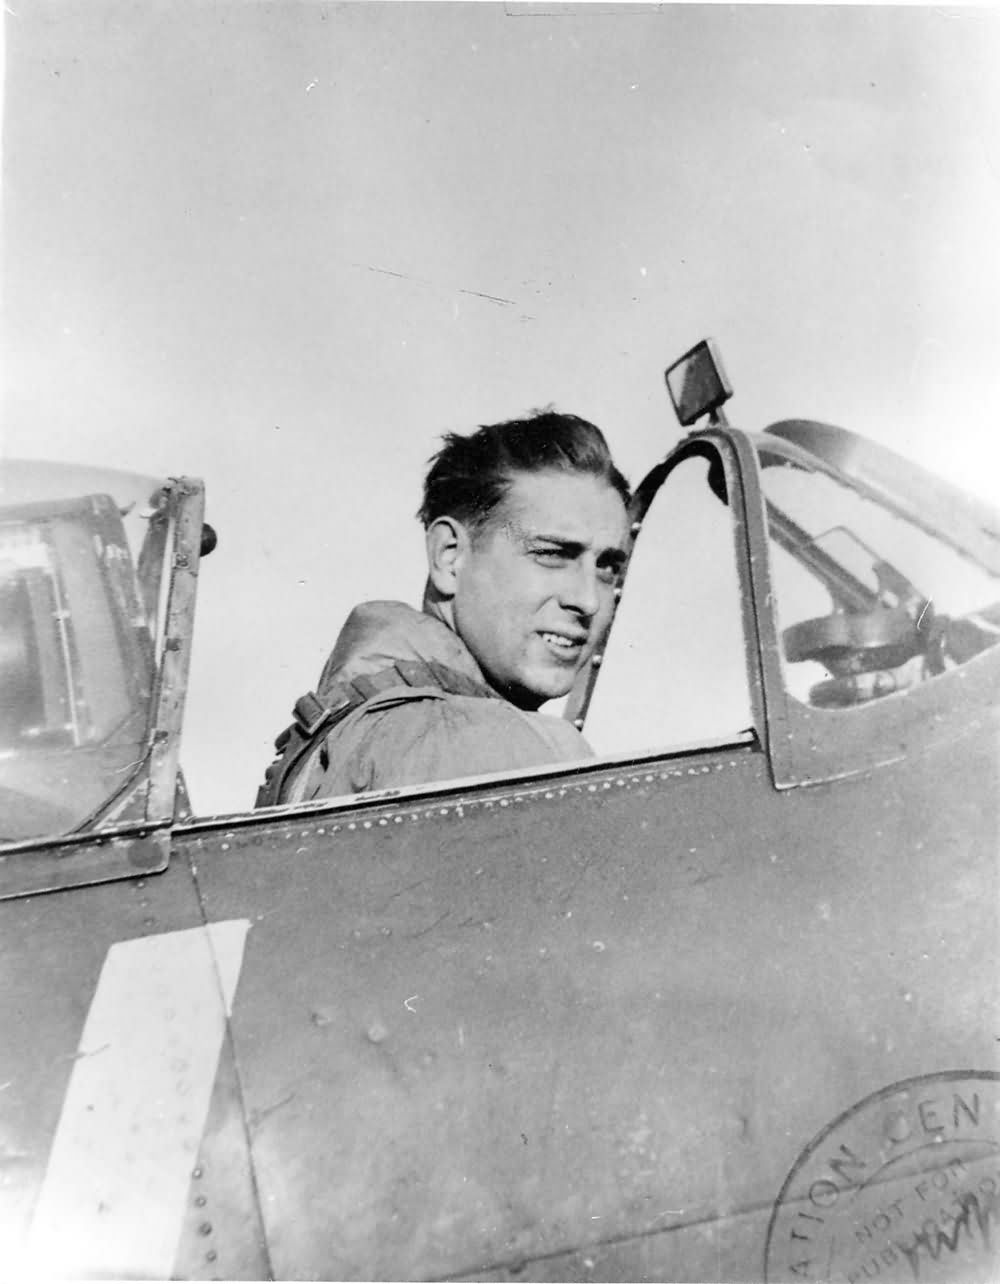 Spitfire Mk Vb pilot George Carpenter No  121 Squadron RAF